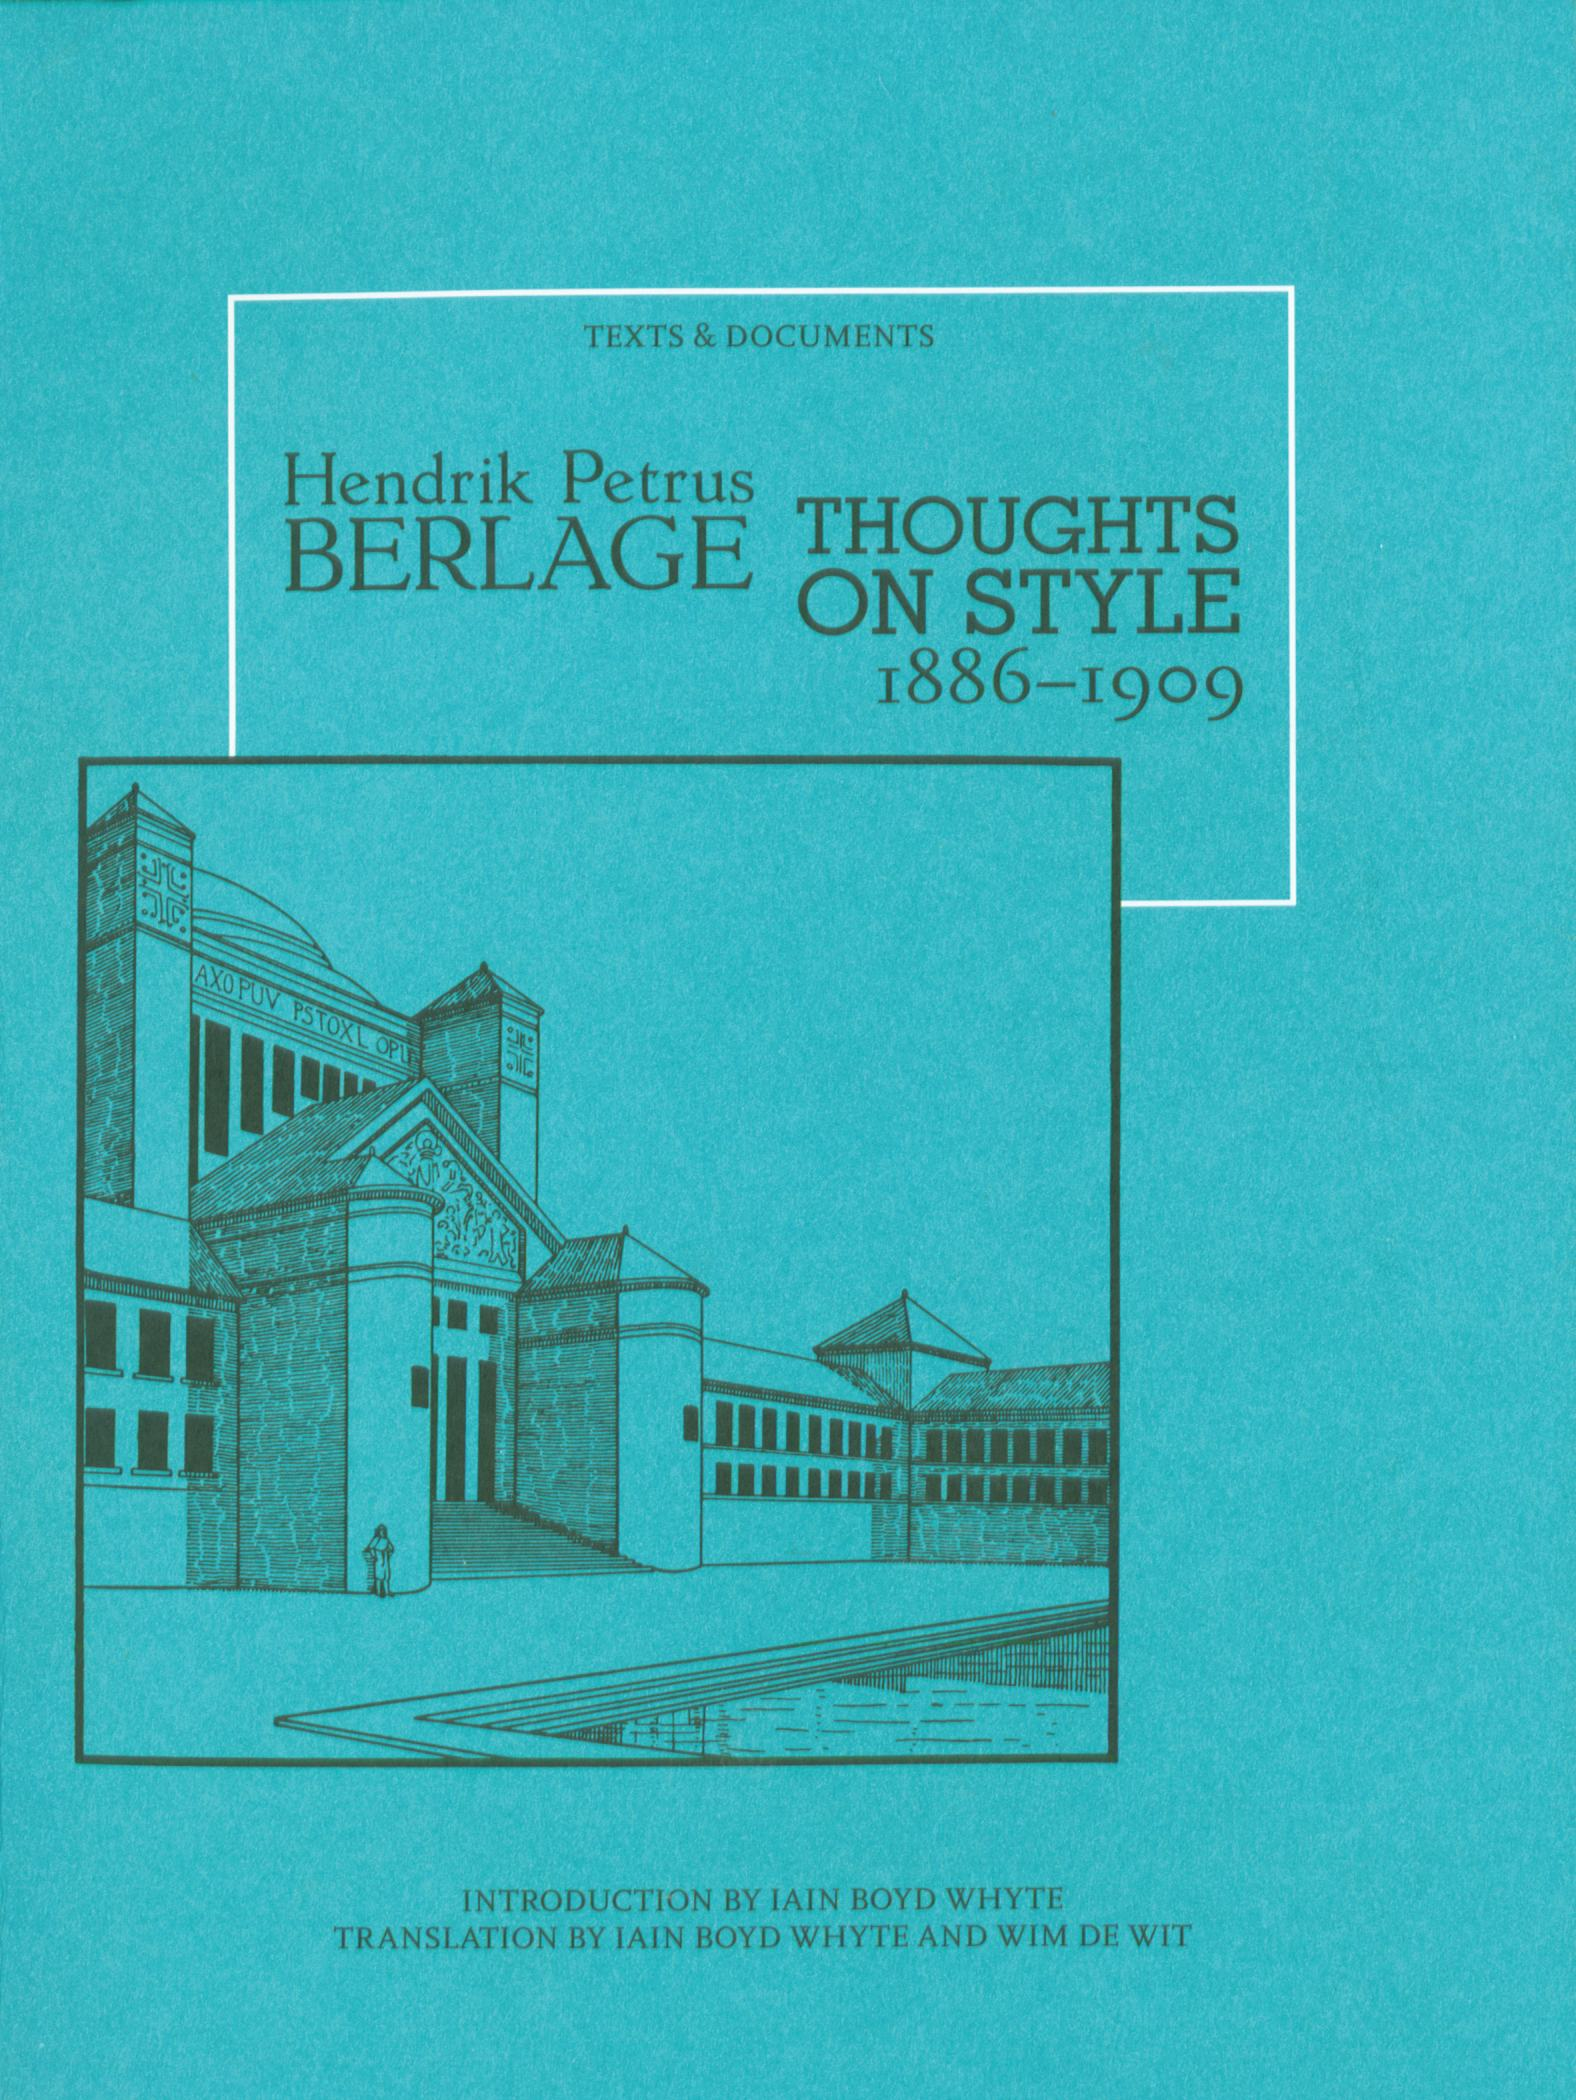 Hendrik Petrus Berlage : Thoughts on Style, 1886—1909 / Introduction by Iain Boyd Whyte ; Translation by Iain Boyd Whyte and Wim de Wit. — Santa Monica : The Getty Center, 1996